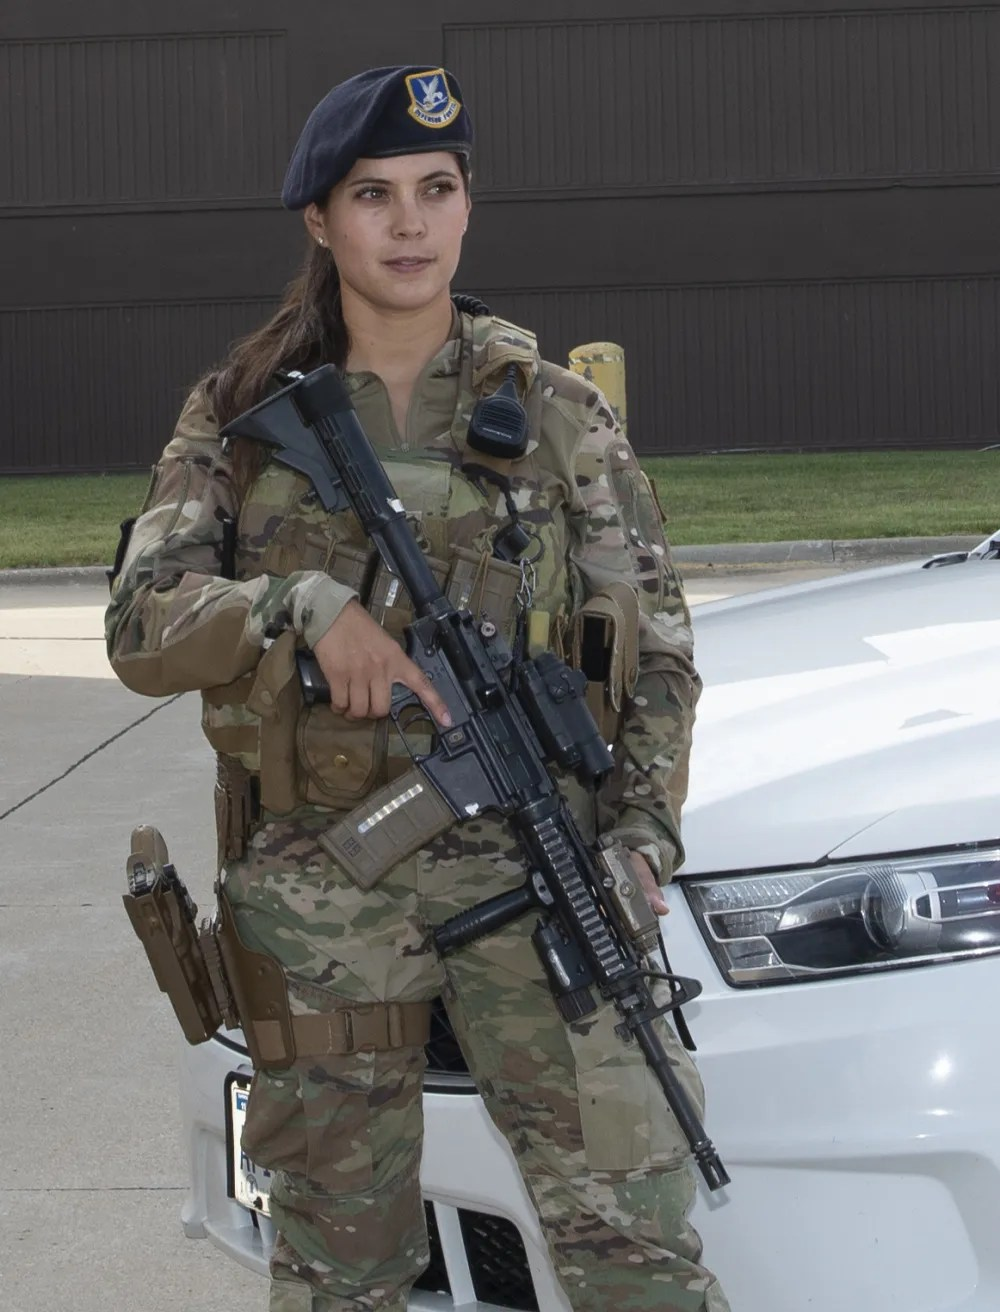 Airman 1st Class Samantha Boyer, 55th Security Forces Squadron, stands guard on June 25, 2021, while wearing the new body armor specifically designed for a better fit for females in the Air Force. The new vests have been available to Offutt female defenders since the end of May 2021.